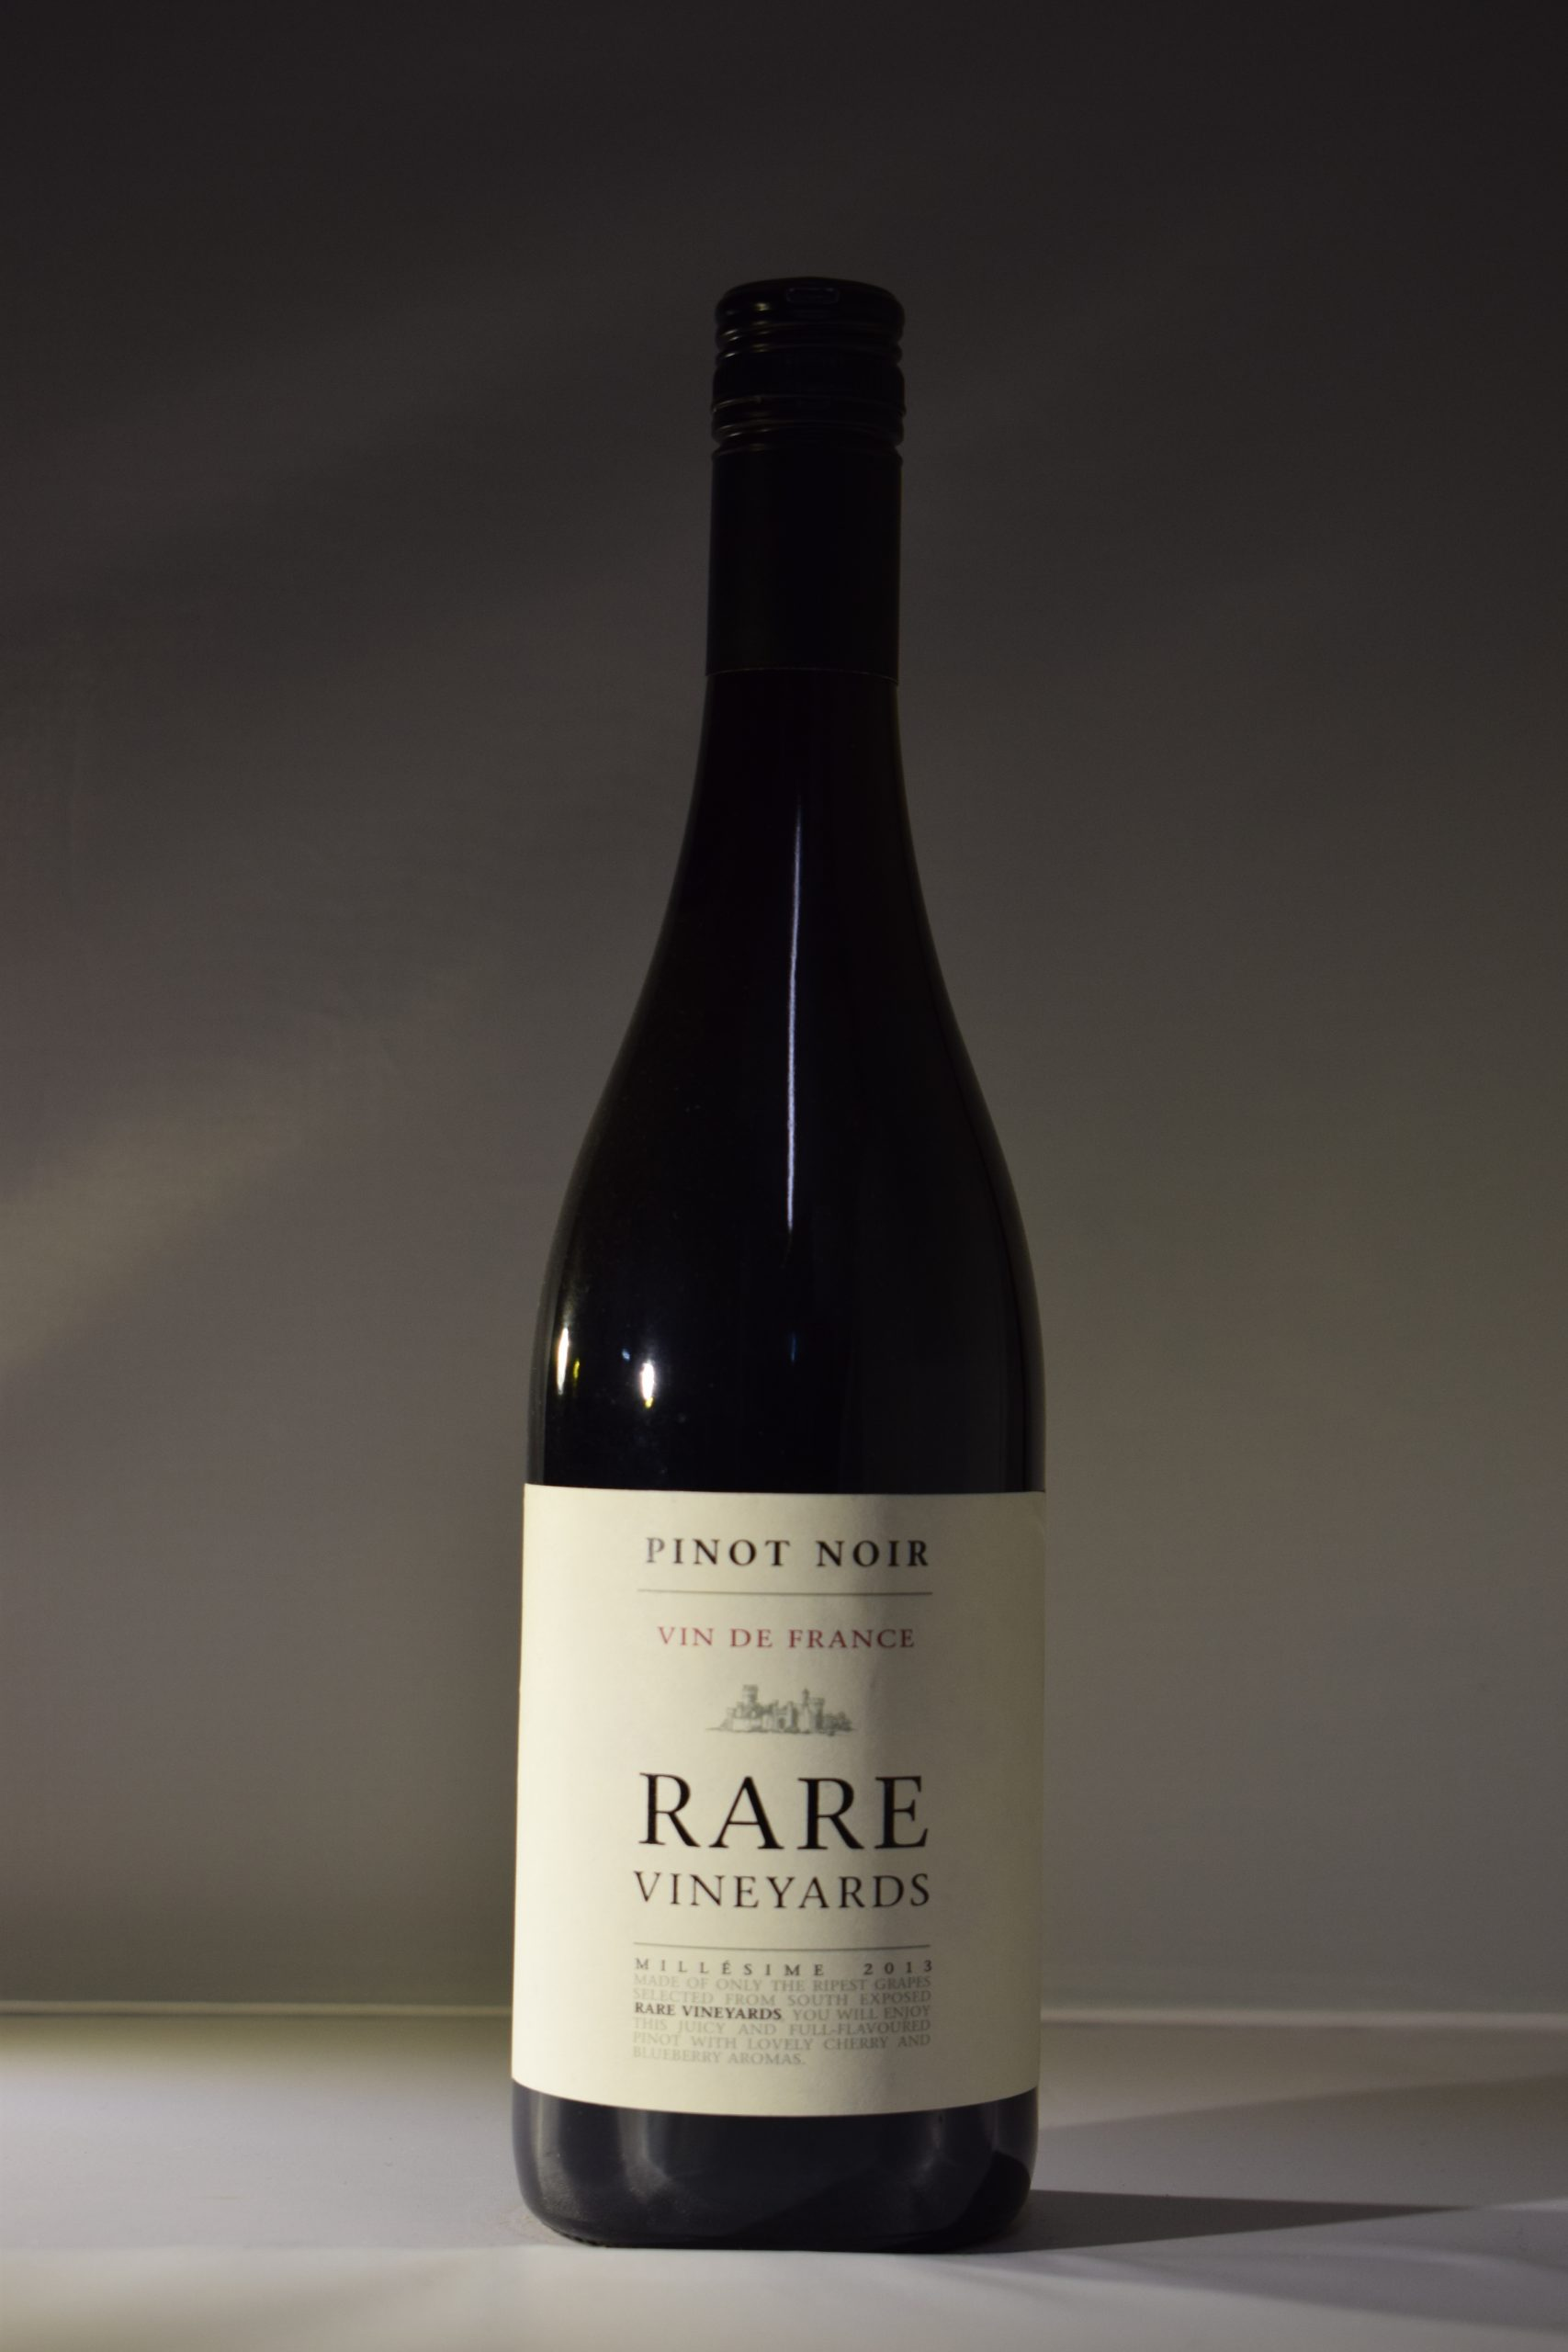 Rare Vineyards Pinot Noir 2013